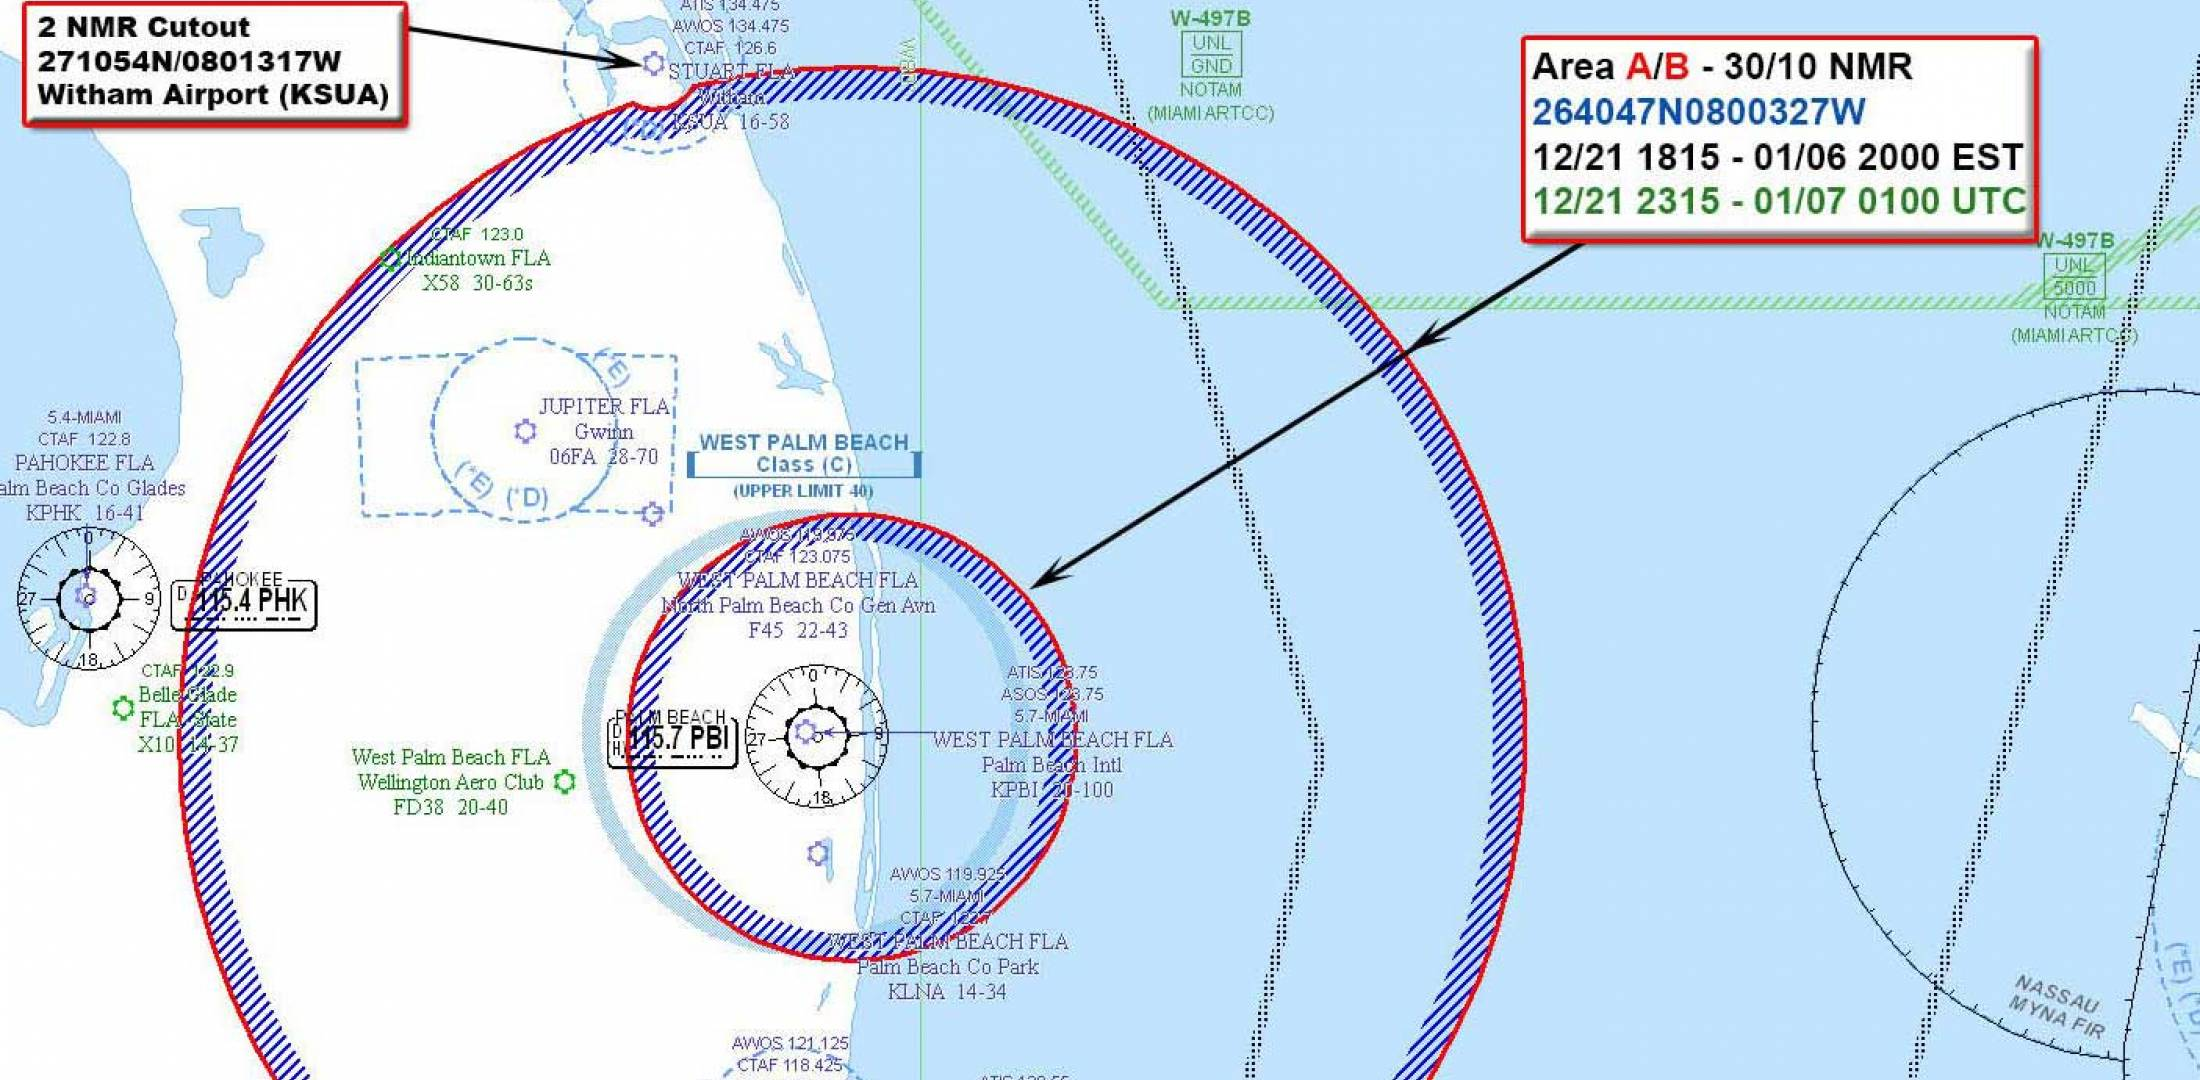 Florida TFR Compounds Holiday Traffic | Business Aviation